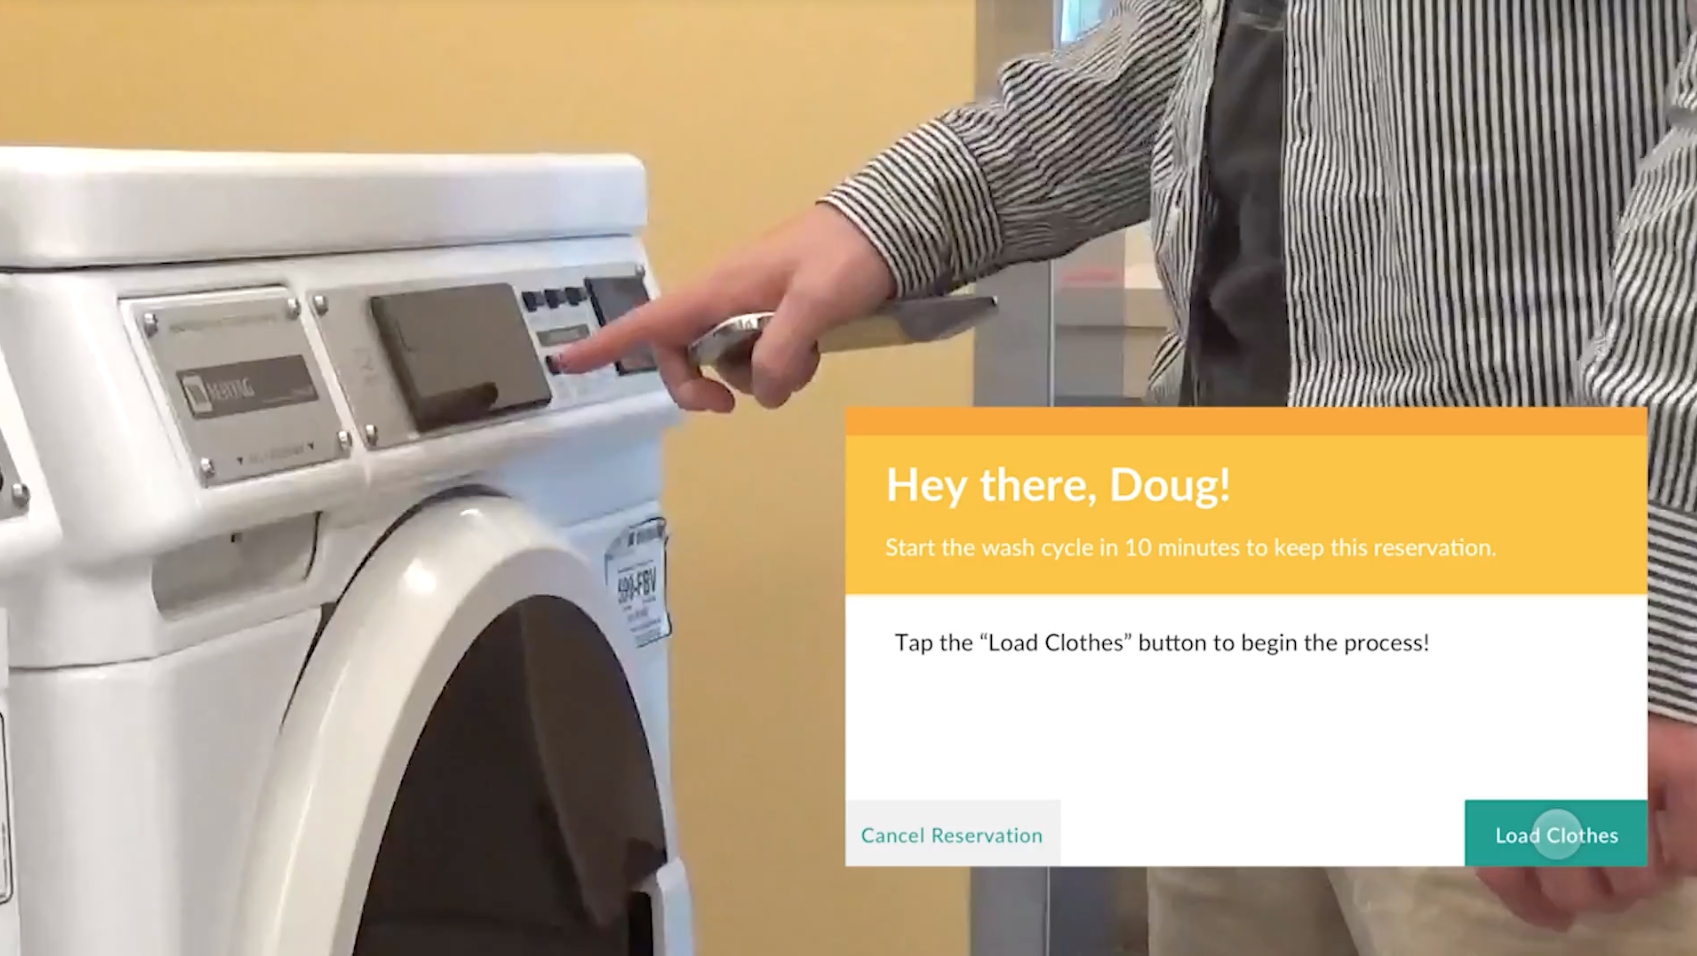 Use technology-integrated laundry machines that supply detergent, softener, and easy coin-free payment. They wash and dry clothes without having to switch machines, and will send you a text message when your laundry is done.